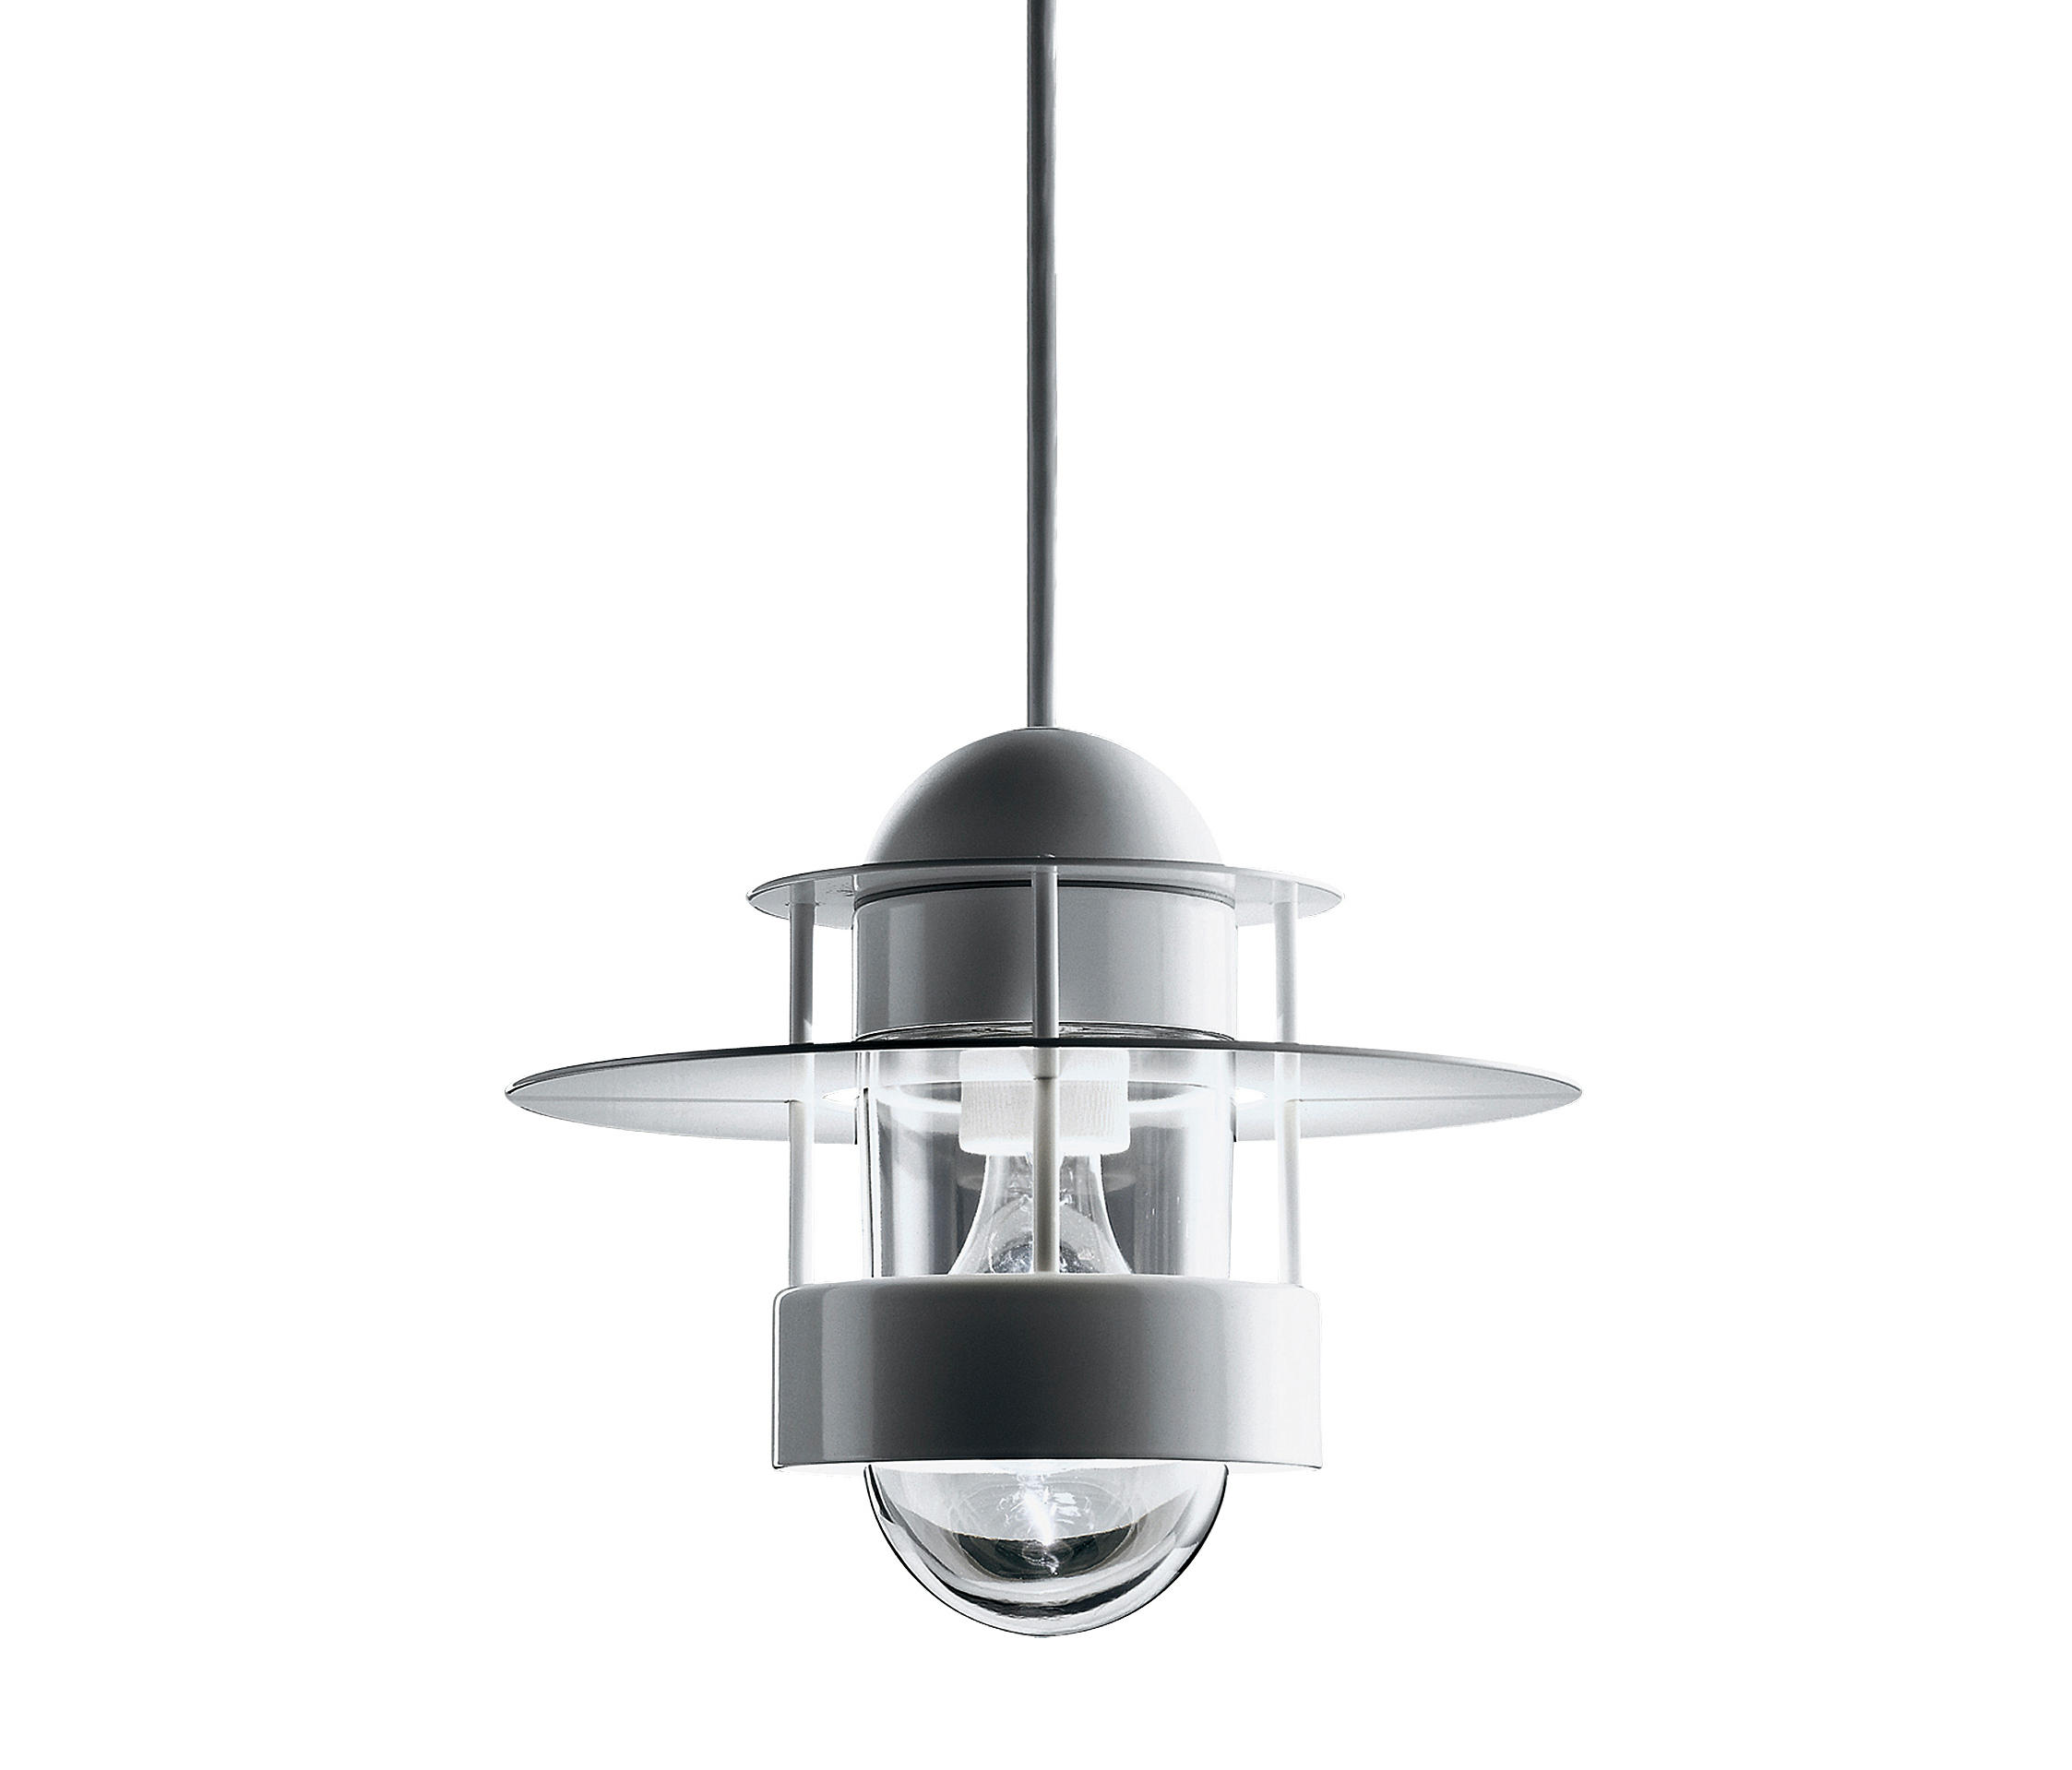 albertslund pendant general lighting from louis poulsen architonic. Black Bedroom Furniture Sets. Home Design Ideas